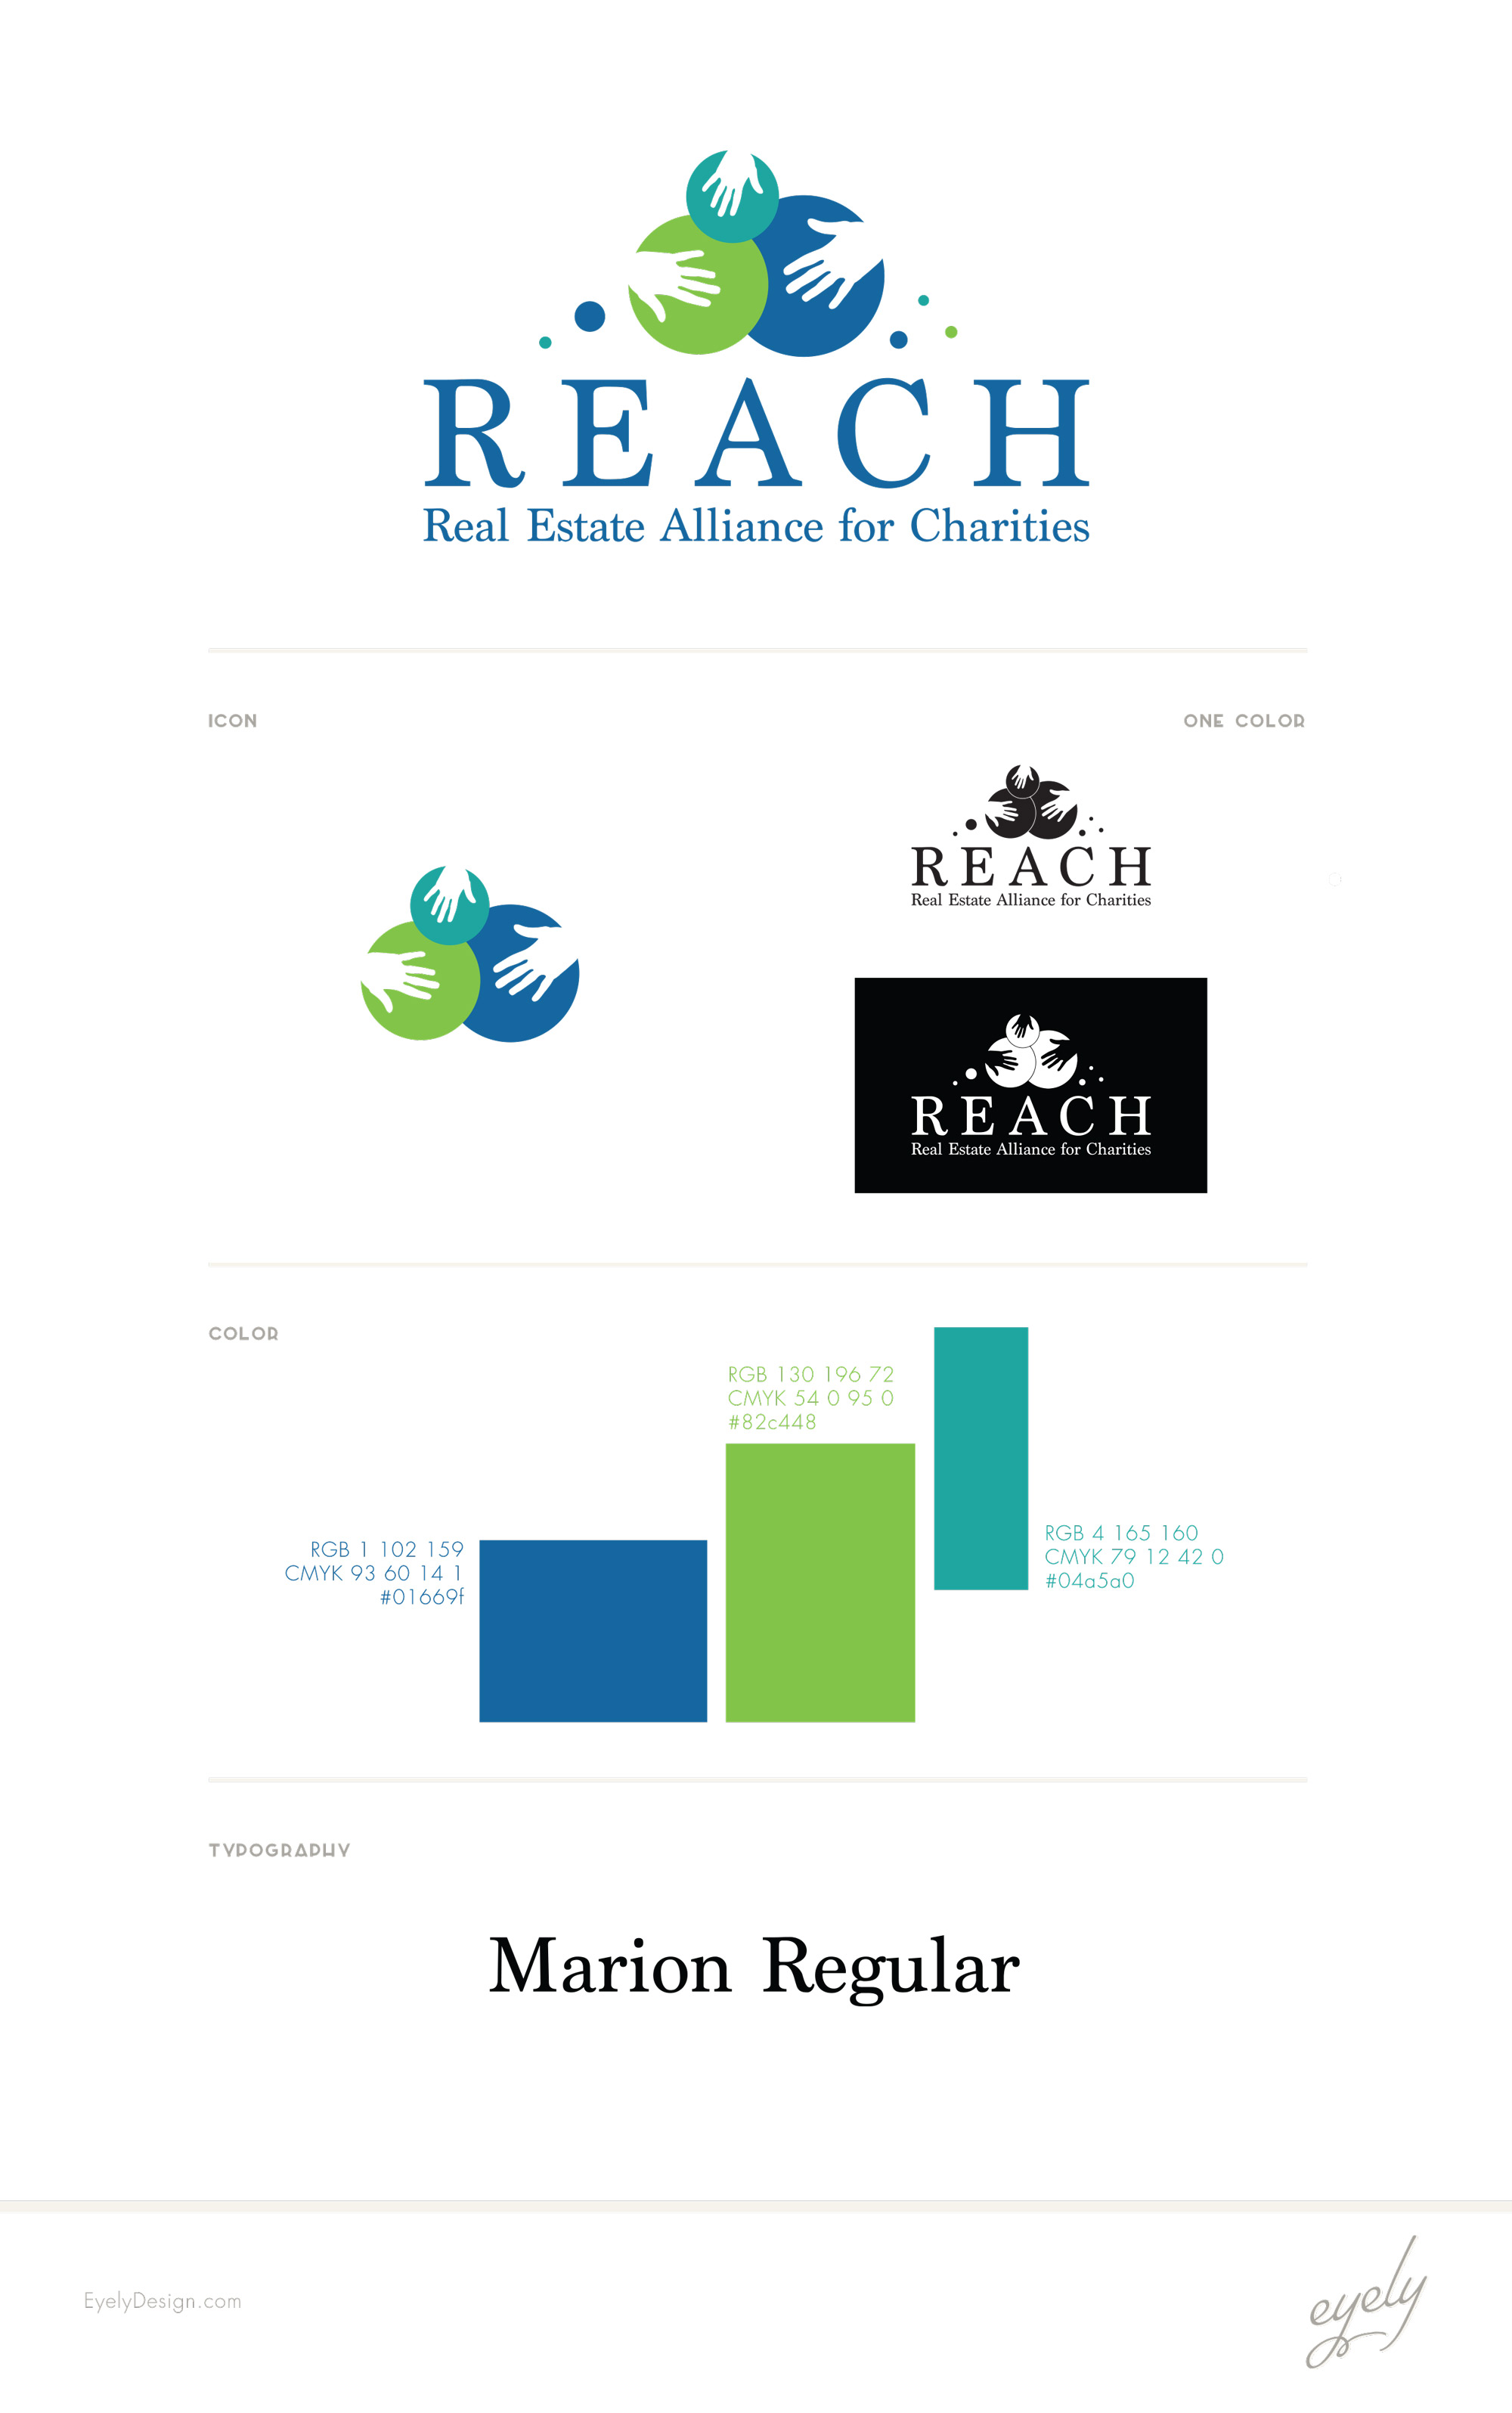 REACH logo design style sheet by eyely design nj south jersey real estate logo